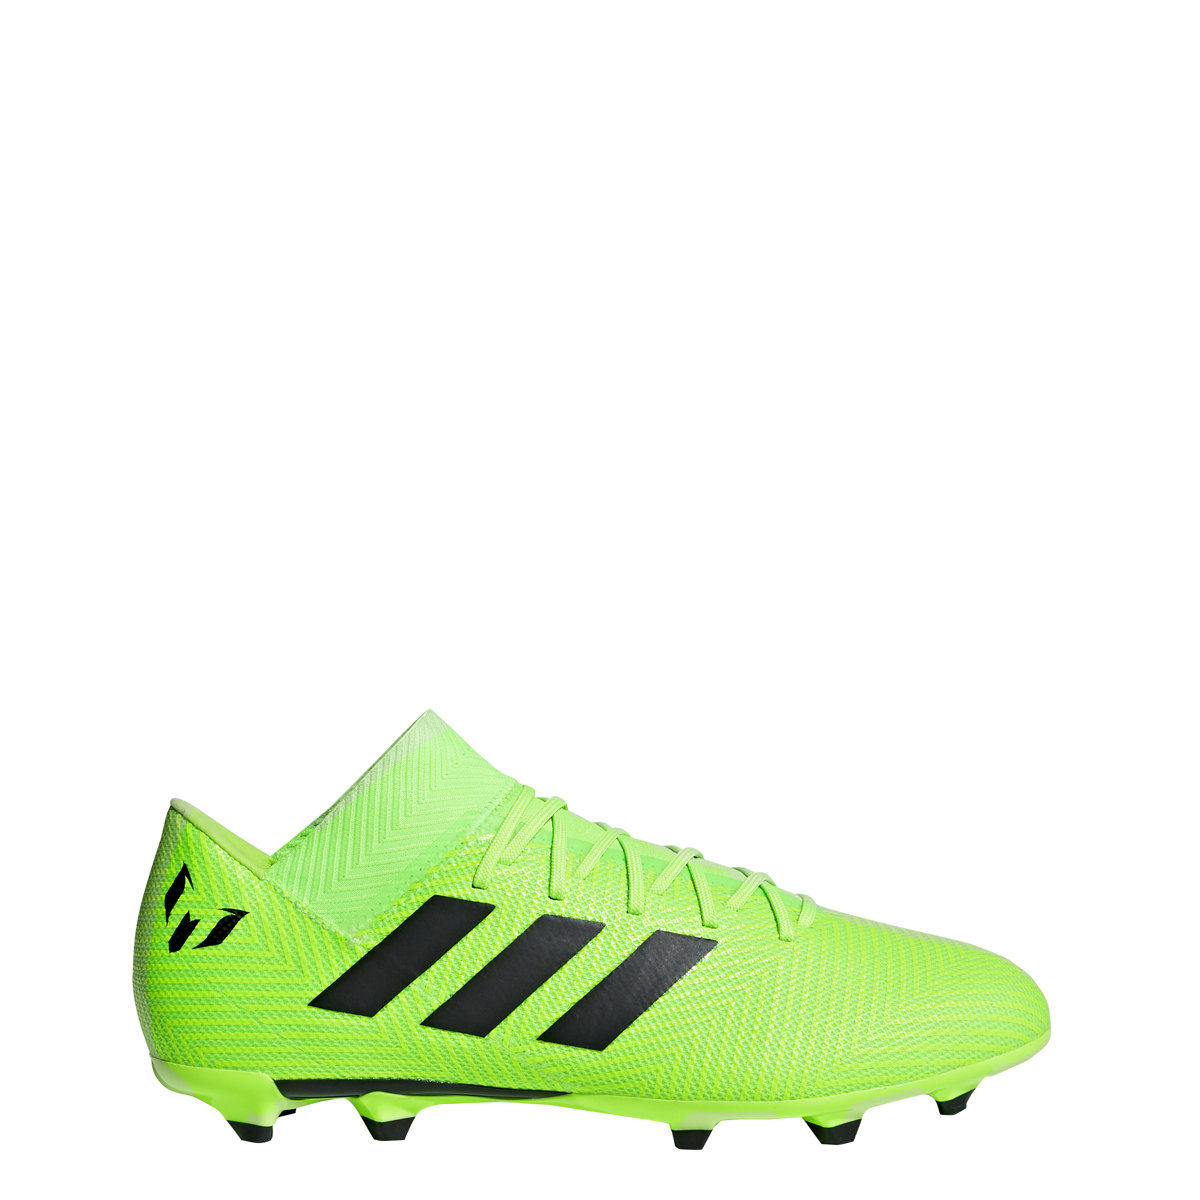 daa001ddf Details about Men s Adidas Nemeziz Messi 18.3 FG Soccer Cleat Green Black